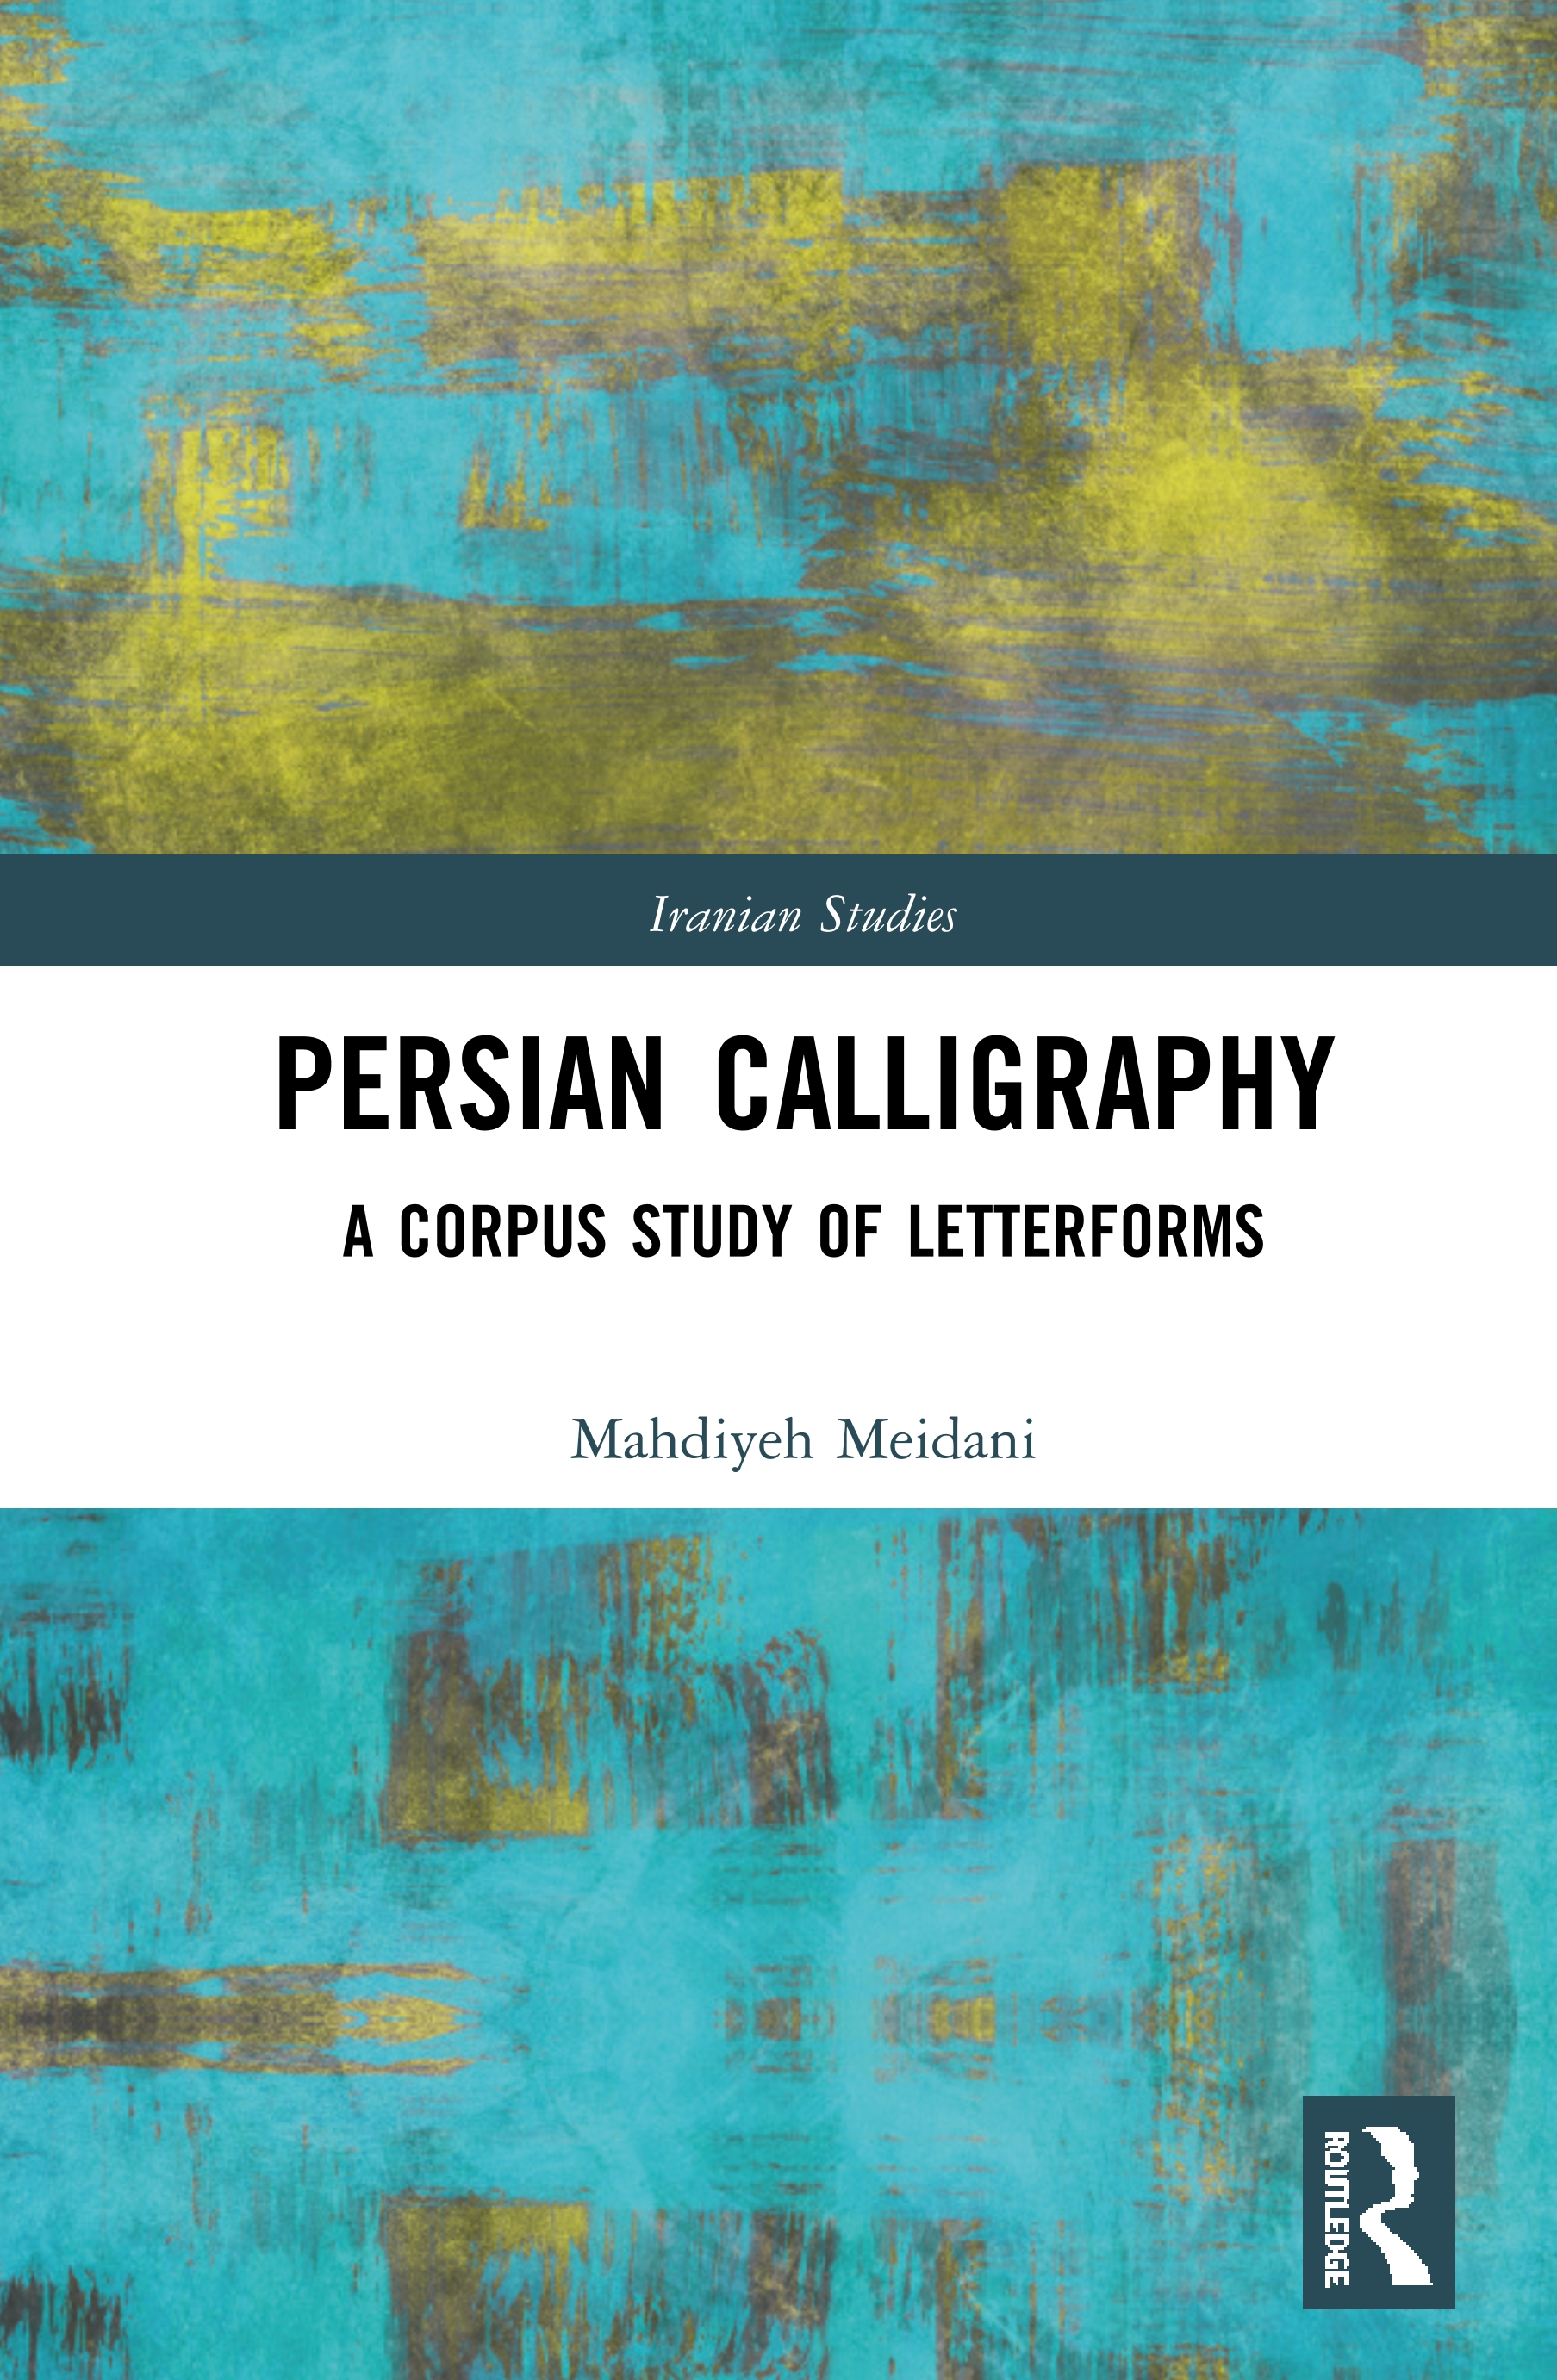 Persian Calligraphy: A Corpus Study of Letterforms book cover